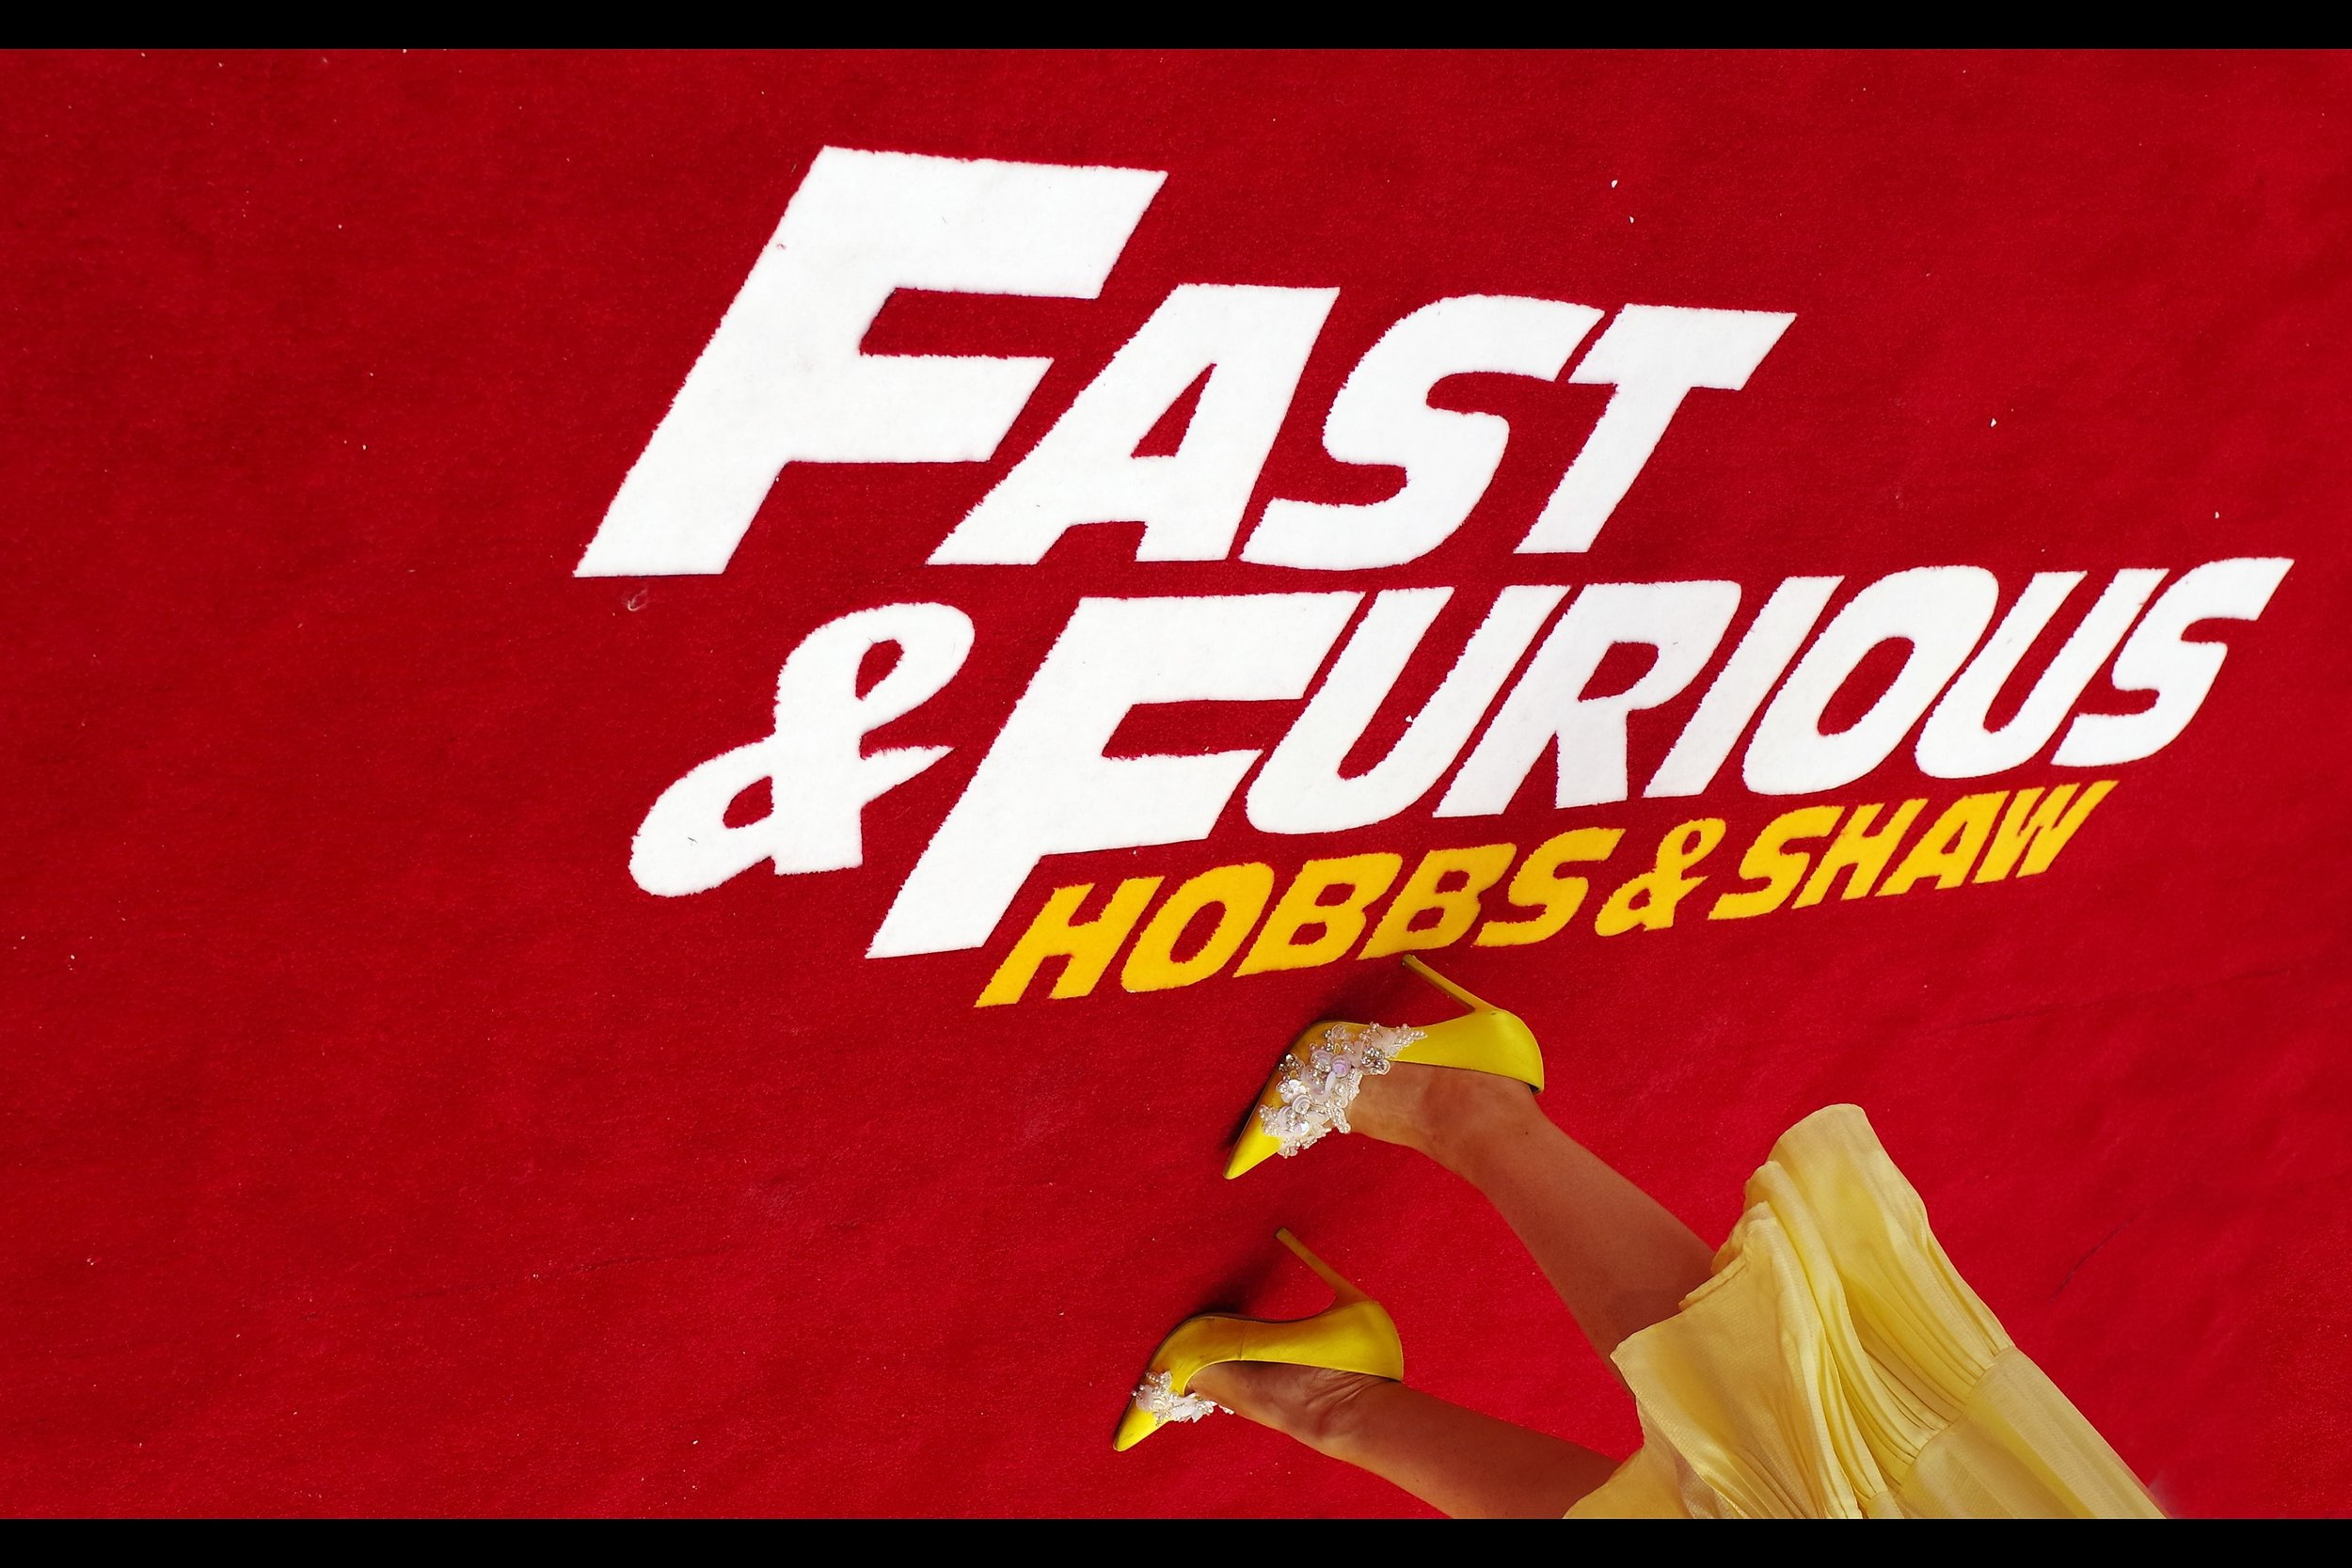 The Fast & Furious franchise is 8 movies deep, but this is a side-film. And you know what? They might be a ludicrous series, but (a) they're fun, and (b) they're not Disney - so I'm looking forward to watching this one. The Laws of Physics need not apply.